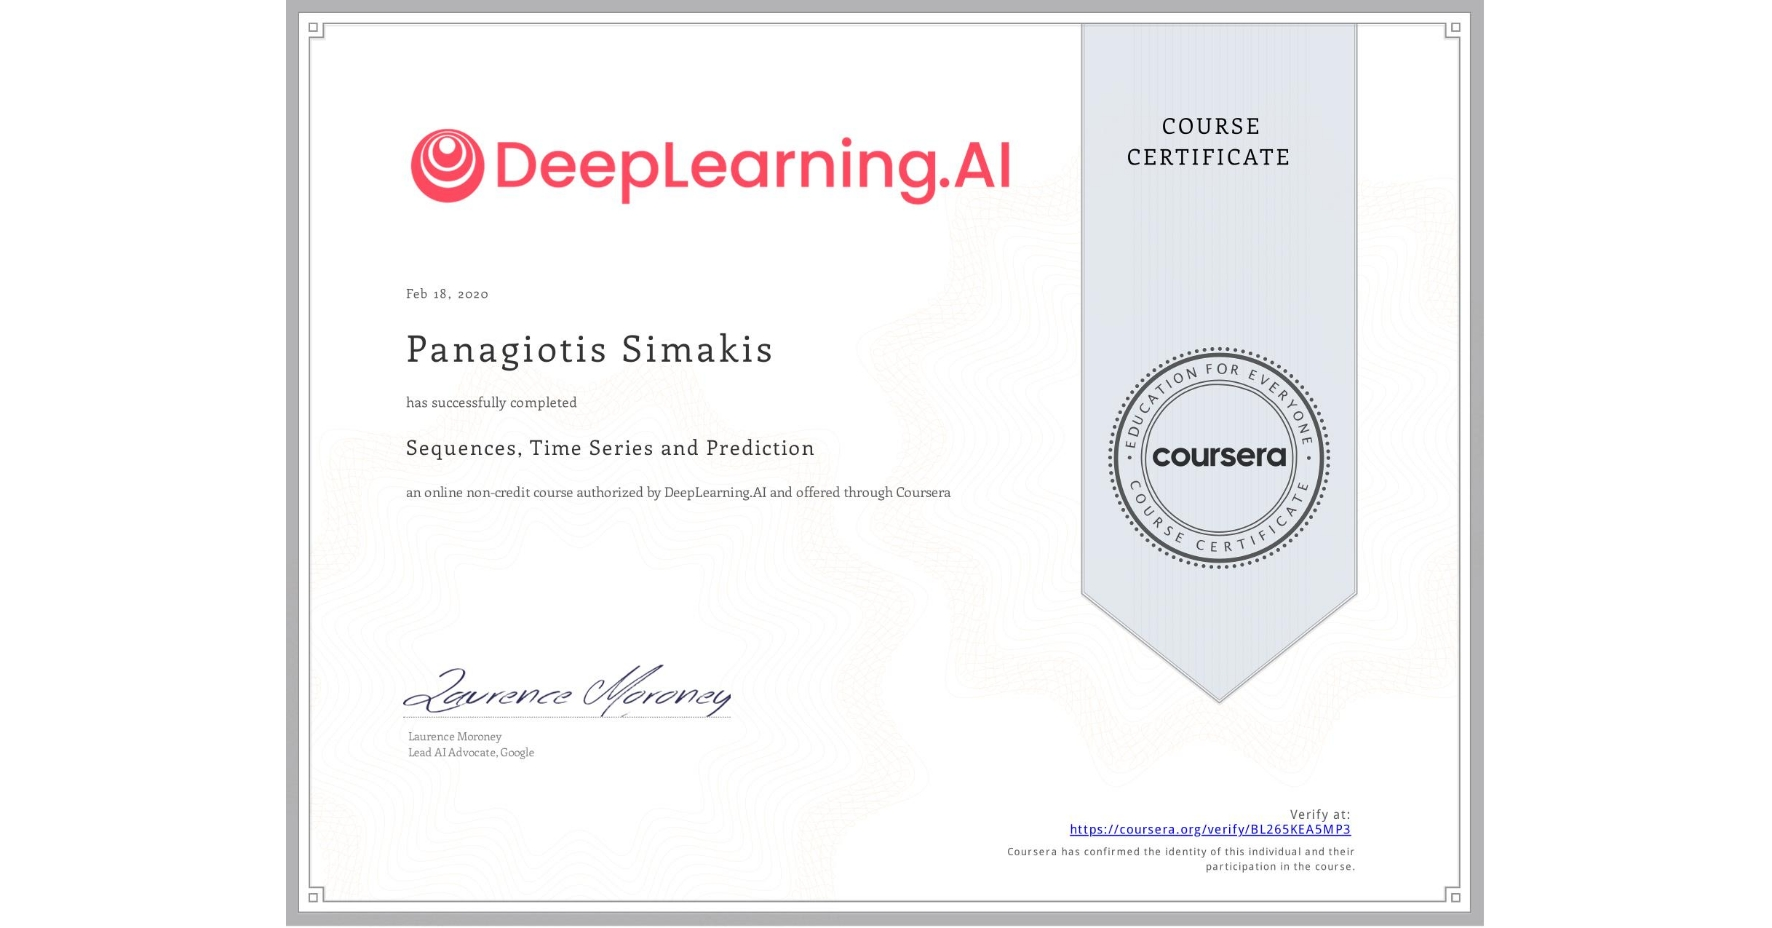 View certificate for Panagiotis Simakis, Sequences, Time Series and Prediction, an online non-credit course authorized by DeepLearning.AI and offered through Coursera